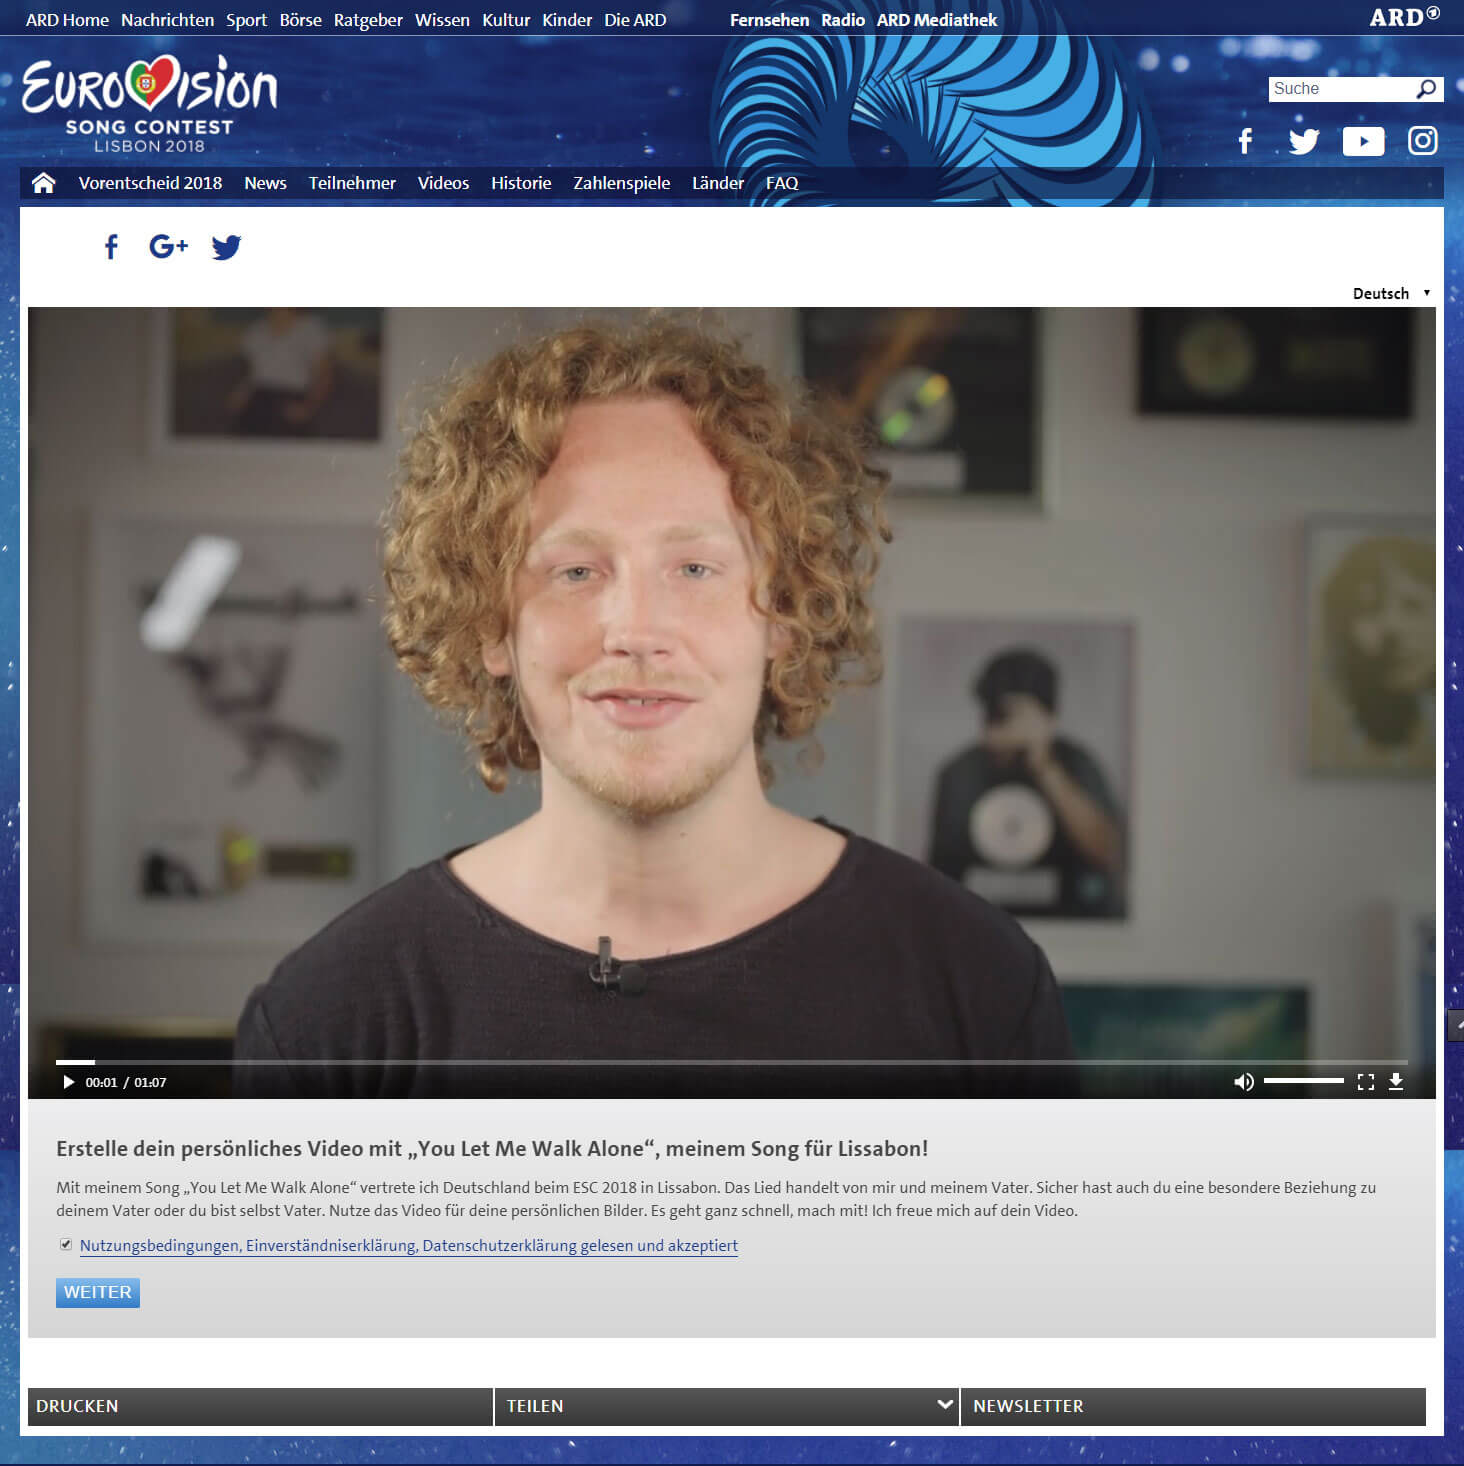 Video Personalisierung für Eurovision Song Contest Interface 03